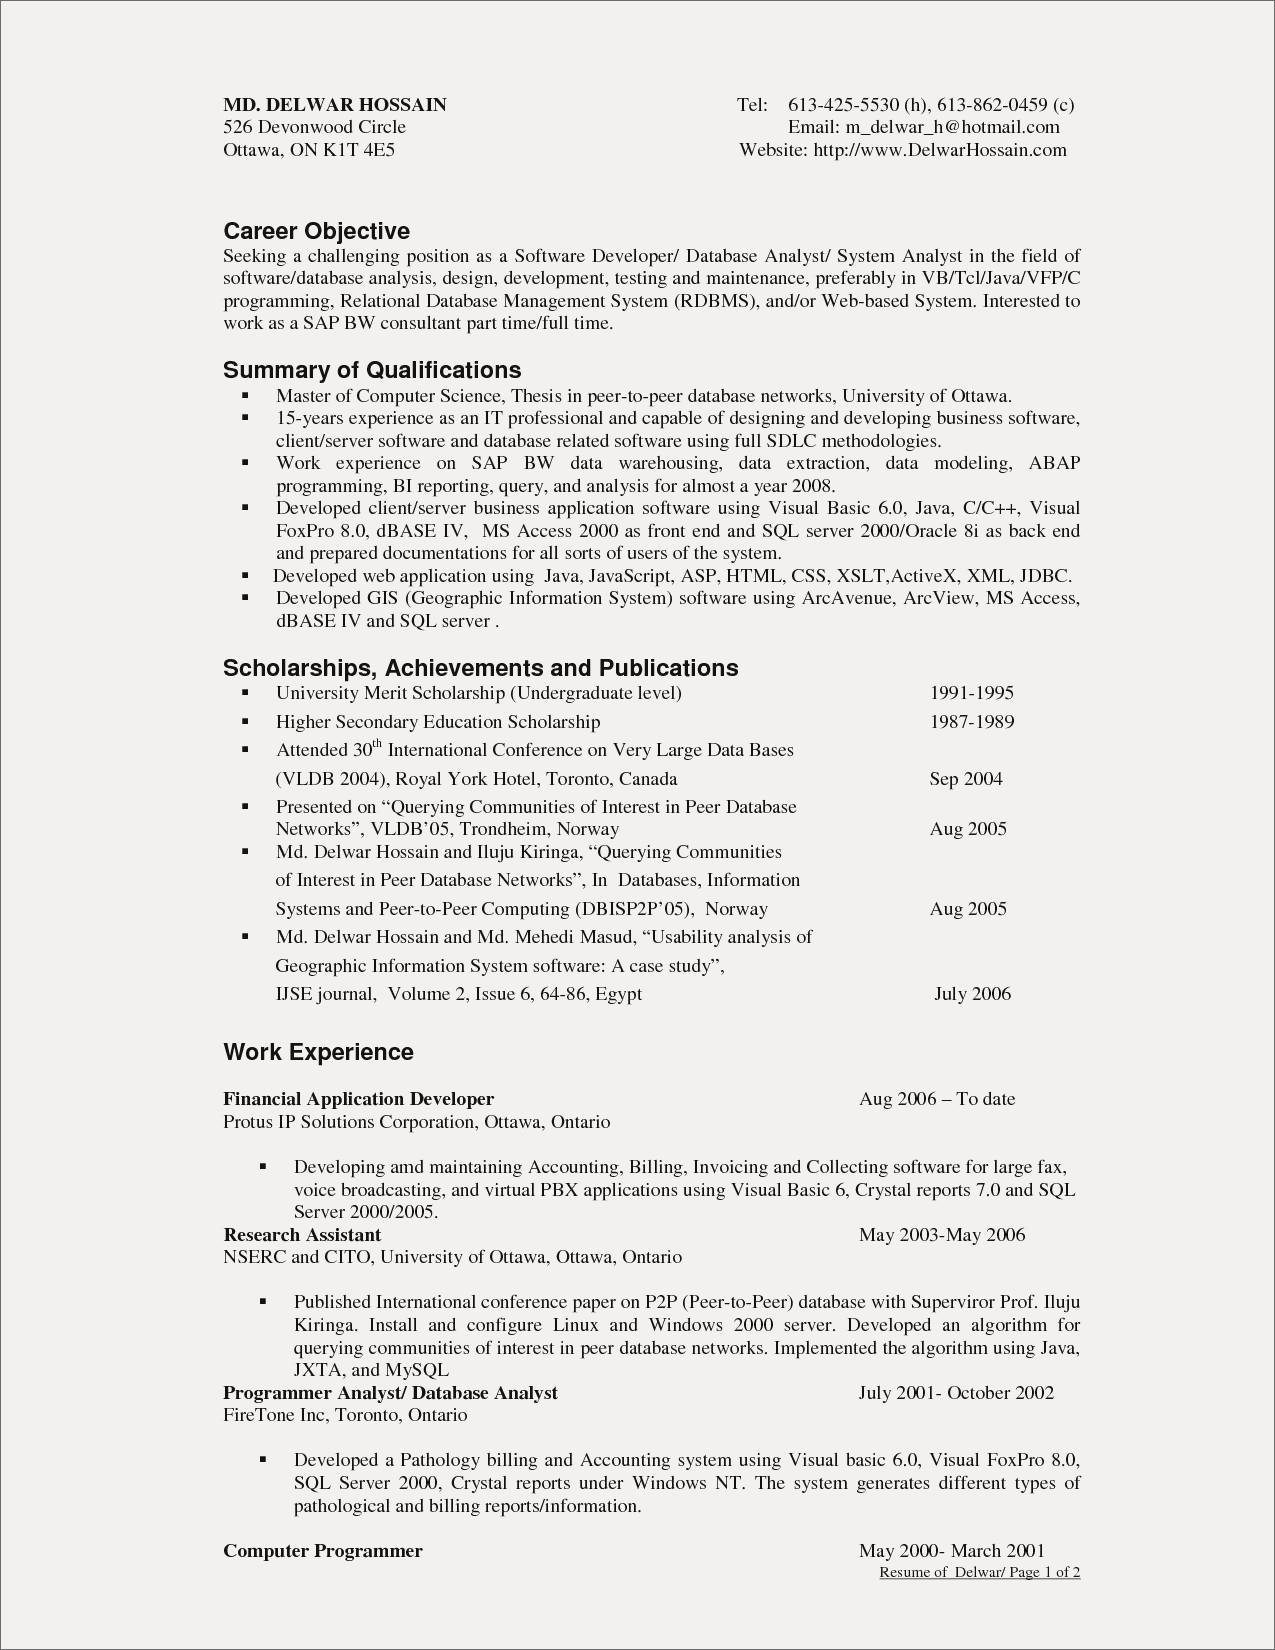 System Analyst Resume - Invoice Management System Profile Resume Examples Unique Cto Resume